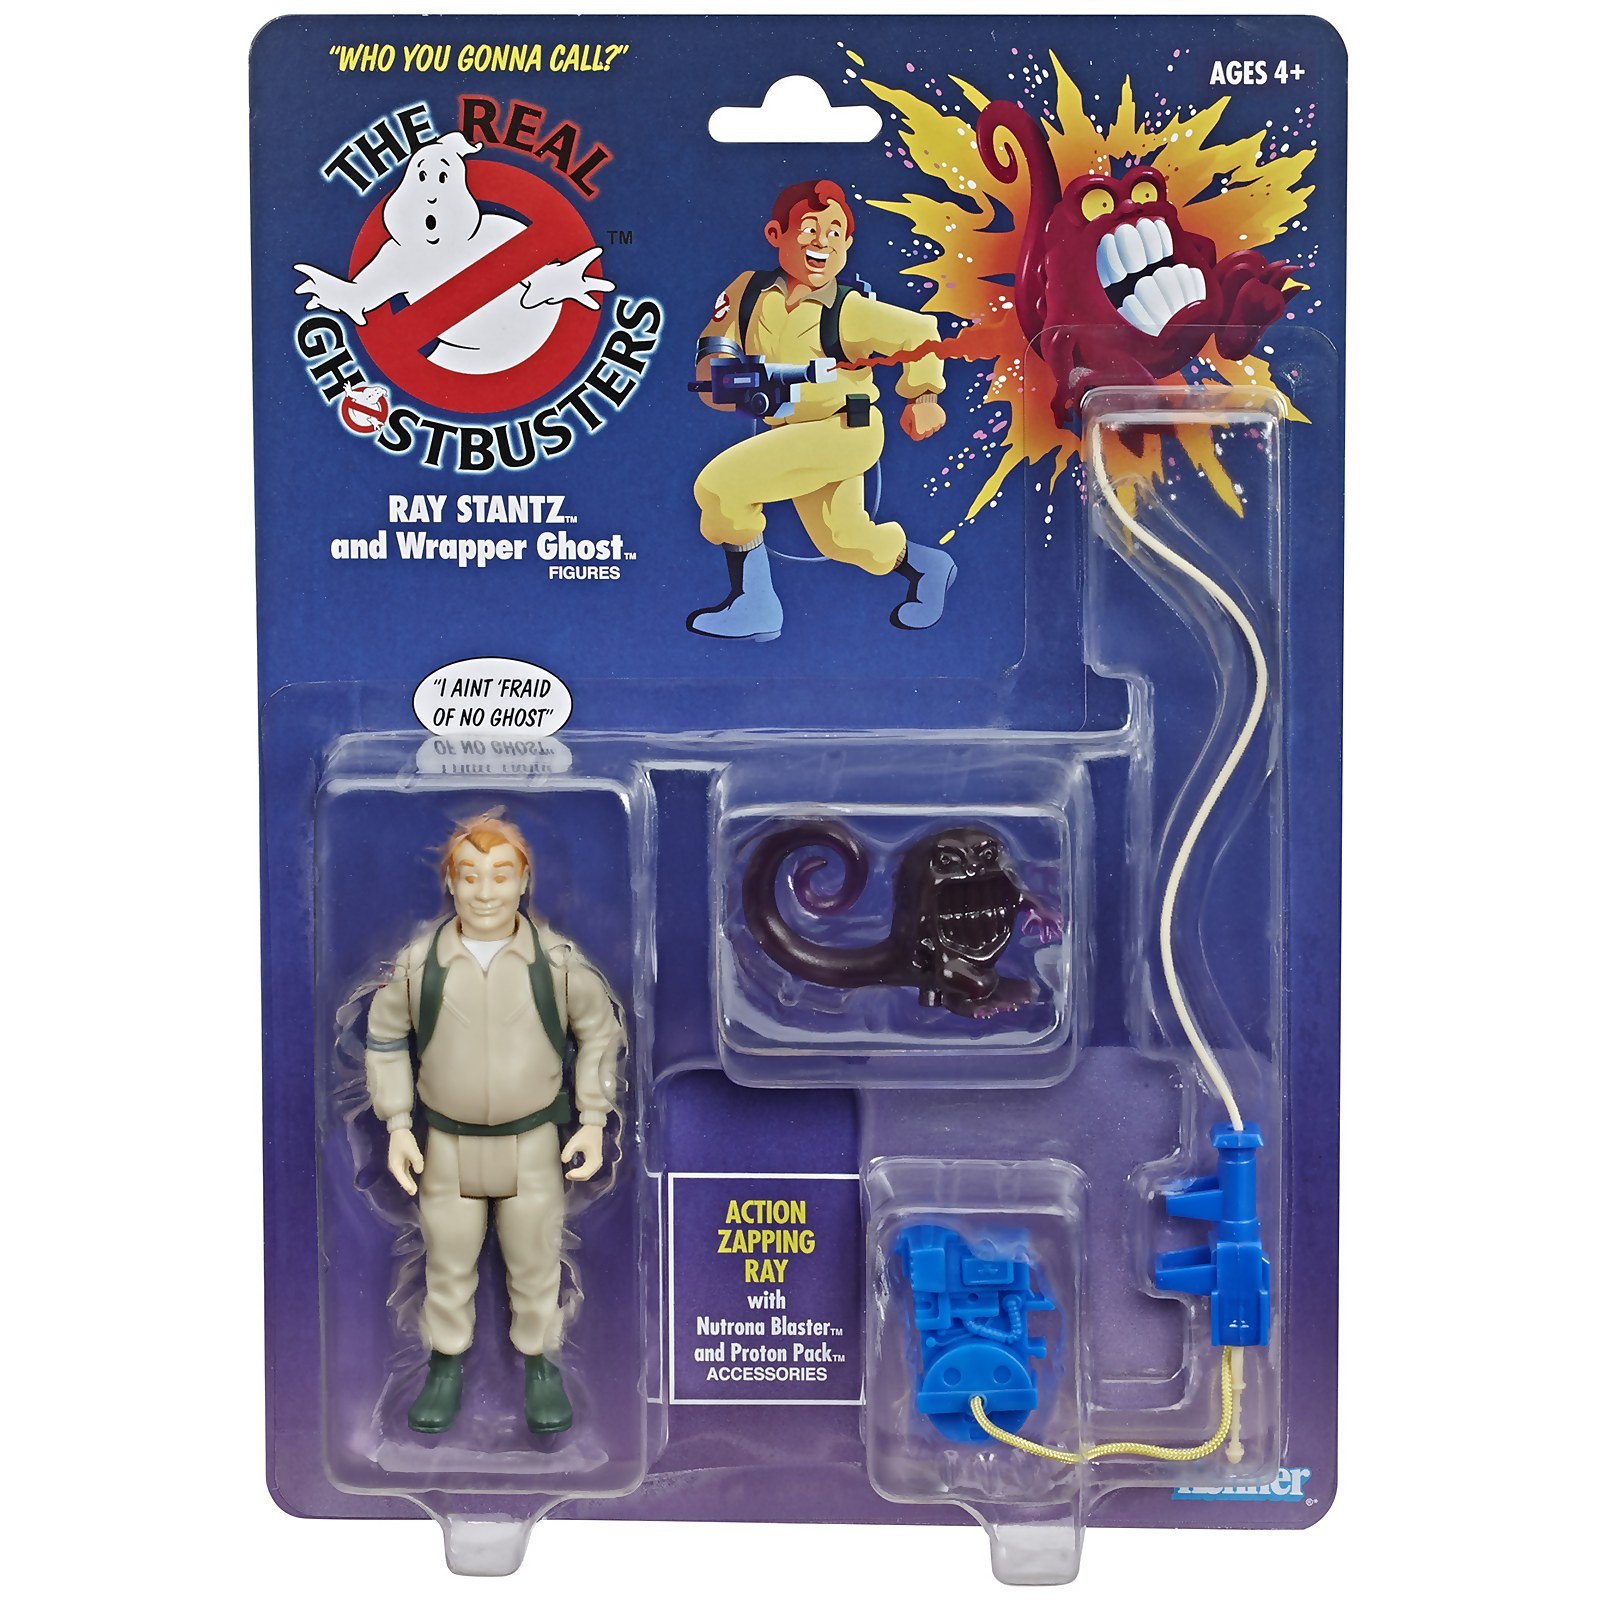 Image of Hasbro Ghostbusters Kenner Classics Ray Stantz and Wrapper Ghost Retro Action Figure